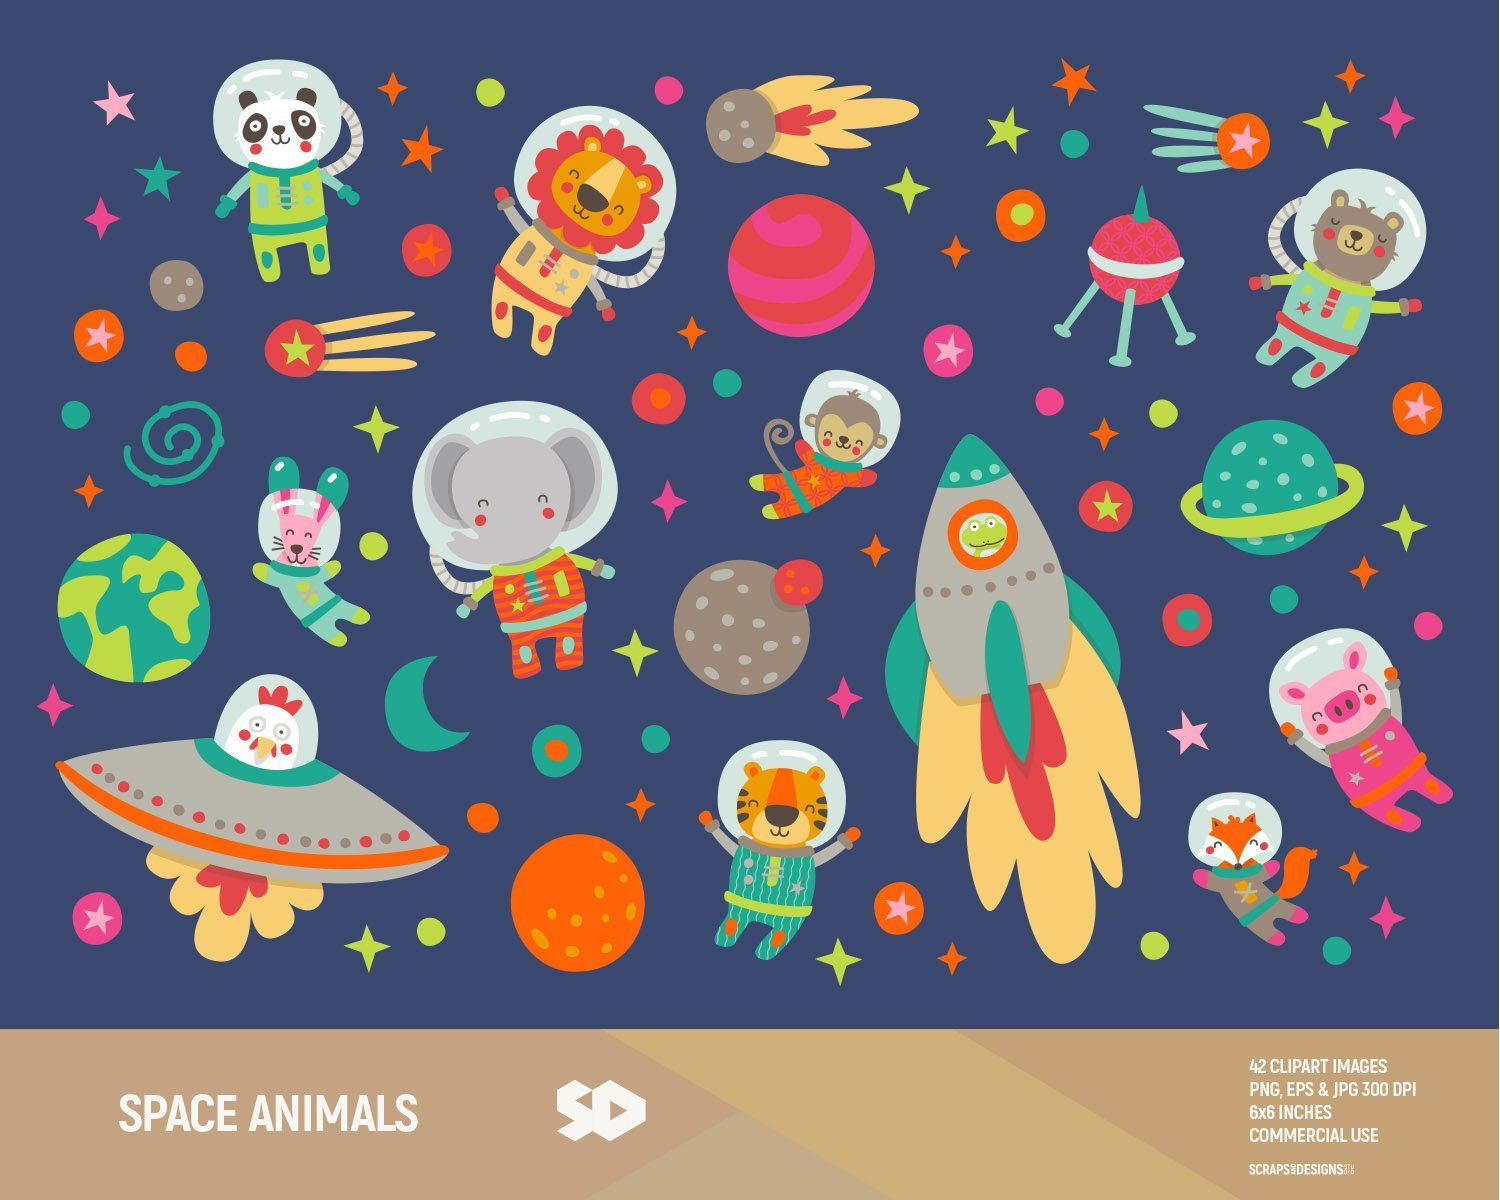 Space Animals Clipart Astronaut Safari Zoo Clip Art Party Kids Baby Shower Nursery Vector Printable School Illustration Commercial Use In 2021 Space Animals Animal Clipart School Illustration